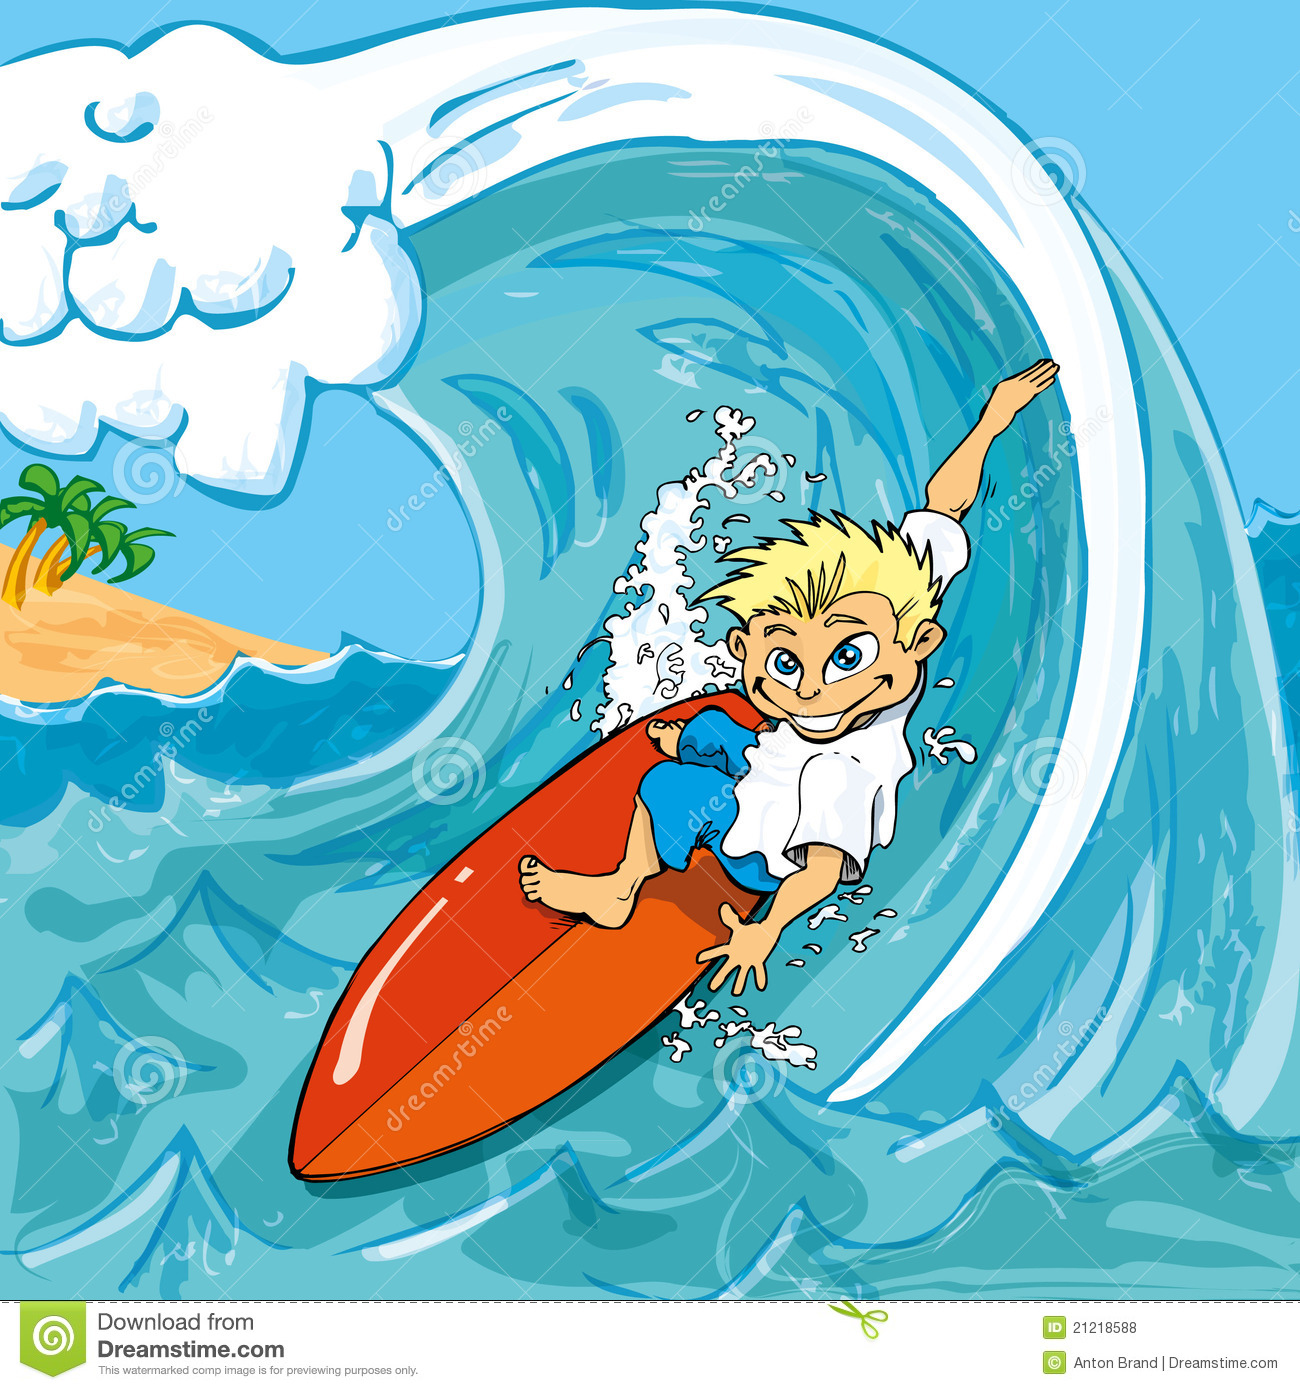 cartoon-boy-surfing-21218588.jpg